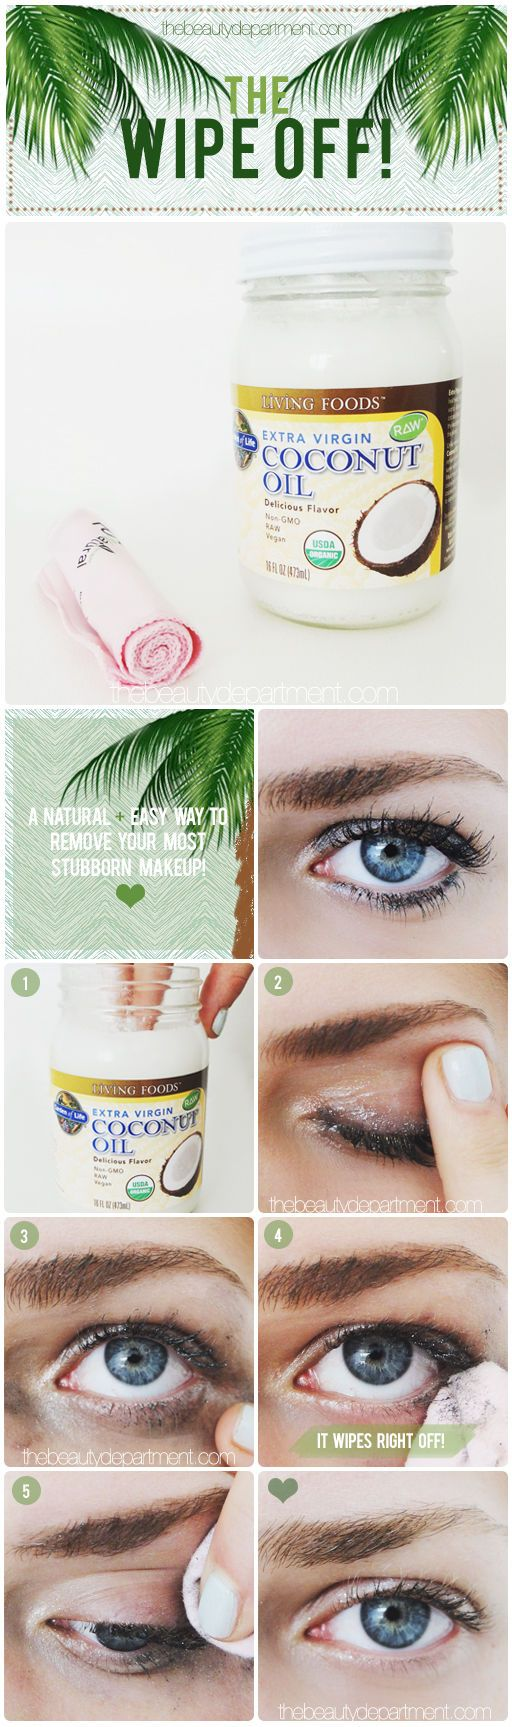 ce6faa222a5d1ef7368242300644e04b - How To Get Eye Makeup Off Without Makeup Remover